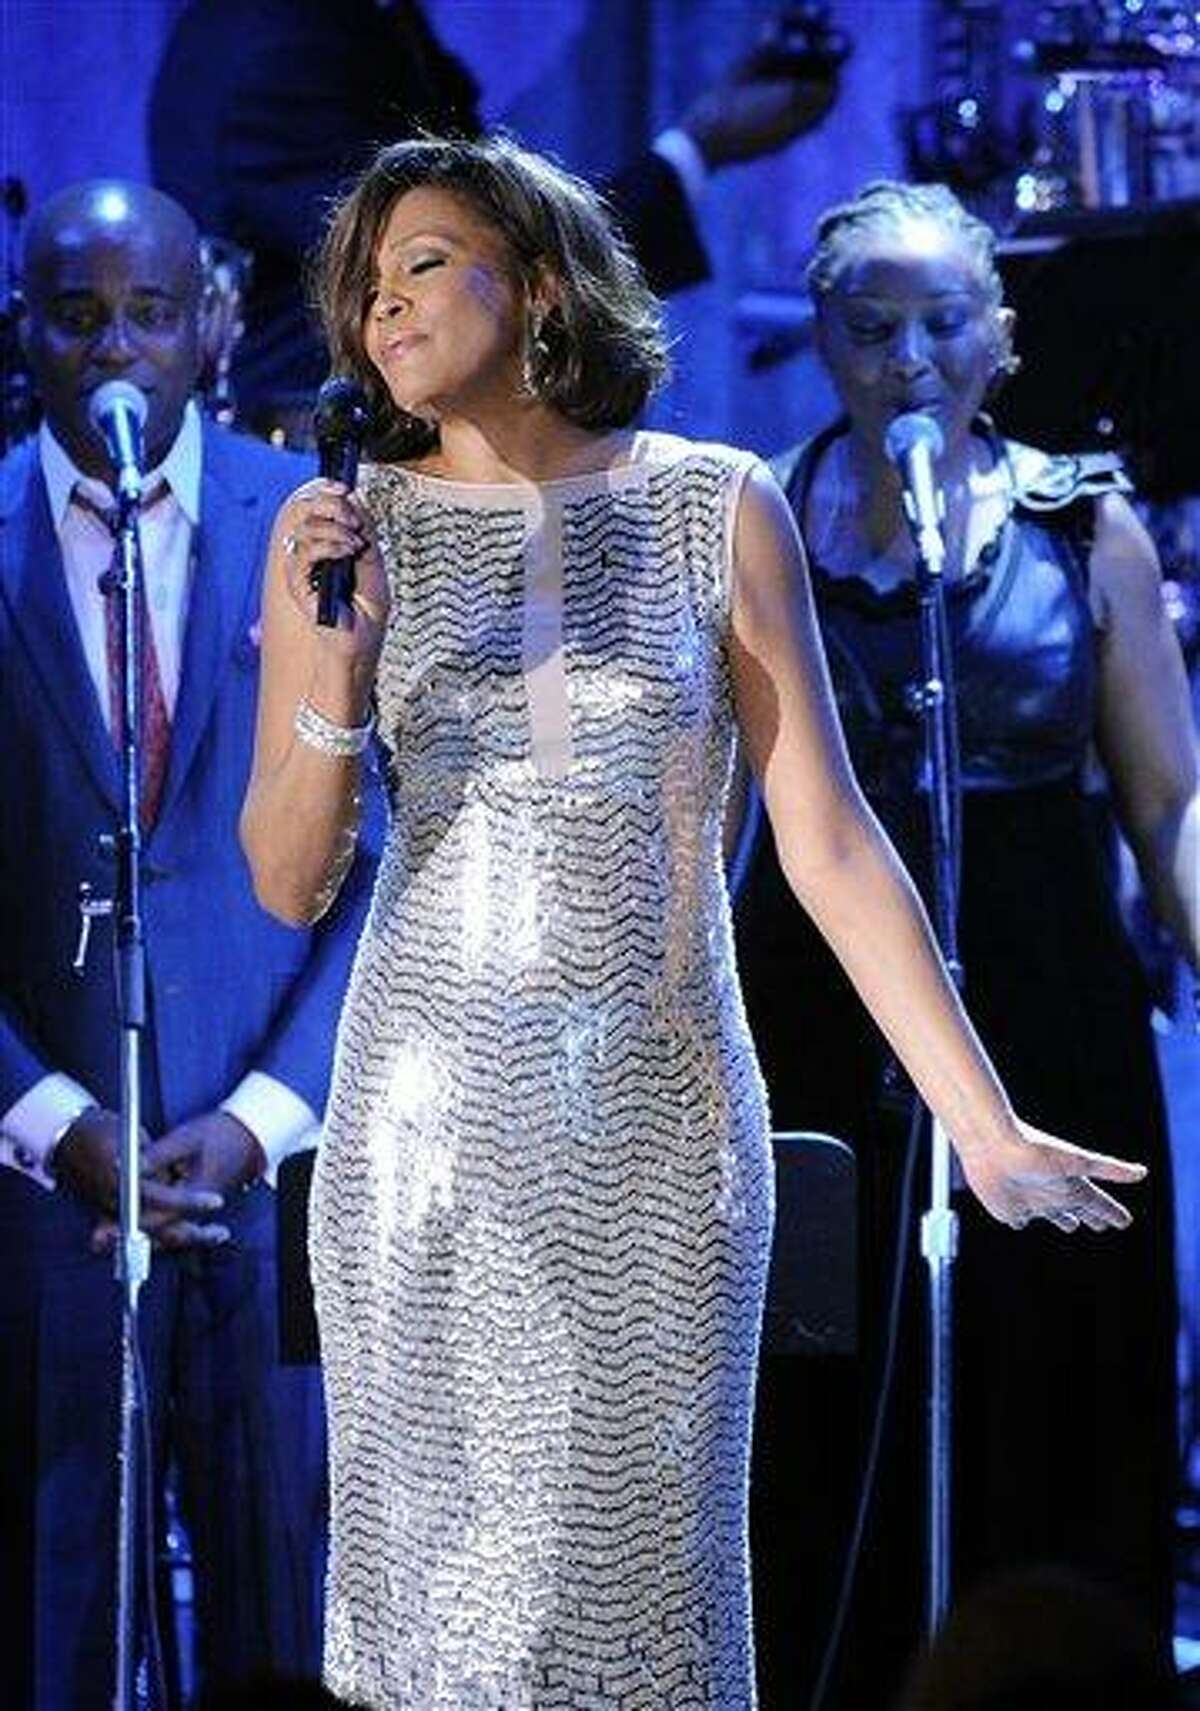 In this Feb. 13, 2011 file photo, singer Whitney Houston performs at the pre-Grammy gala & salute to industry icons with Clive Davis honoring David Geffen in Beverly Hills, Calif. (AP Photo/Mark J. Terrill, file)